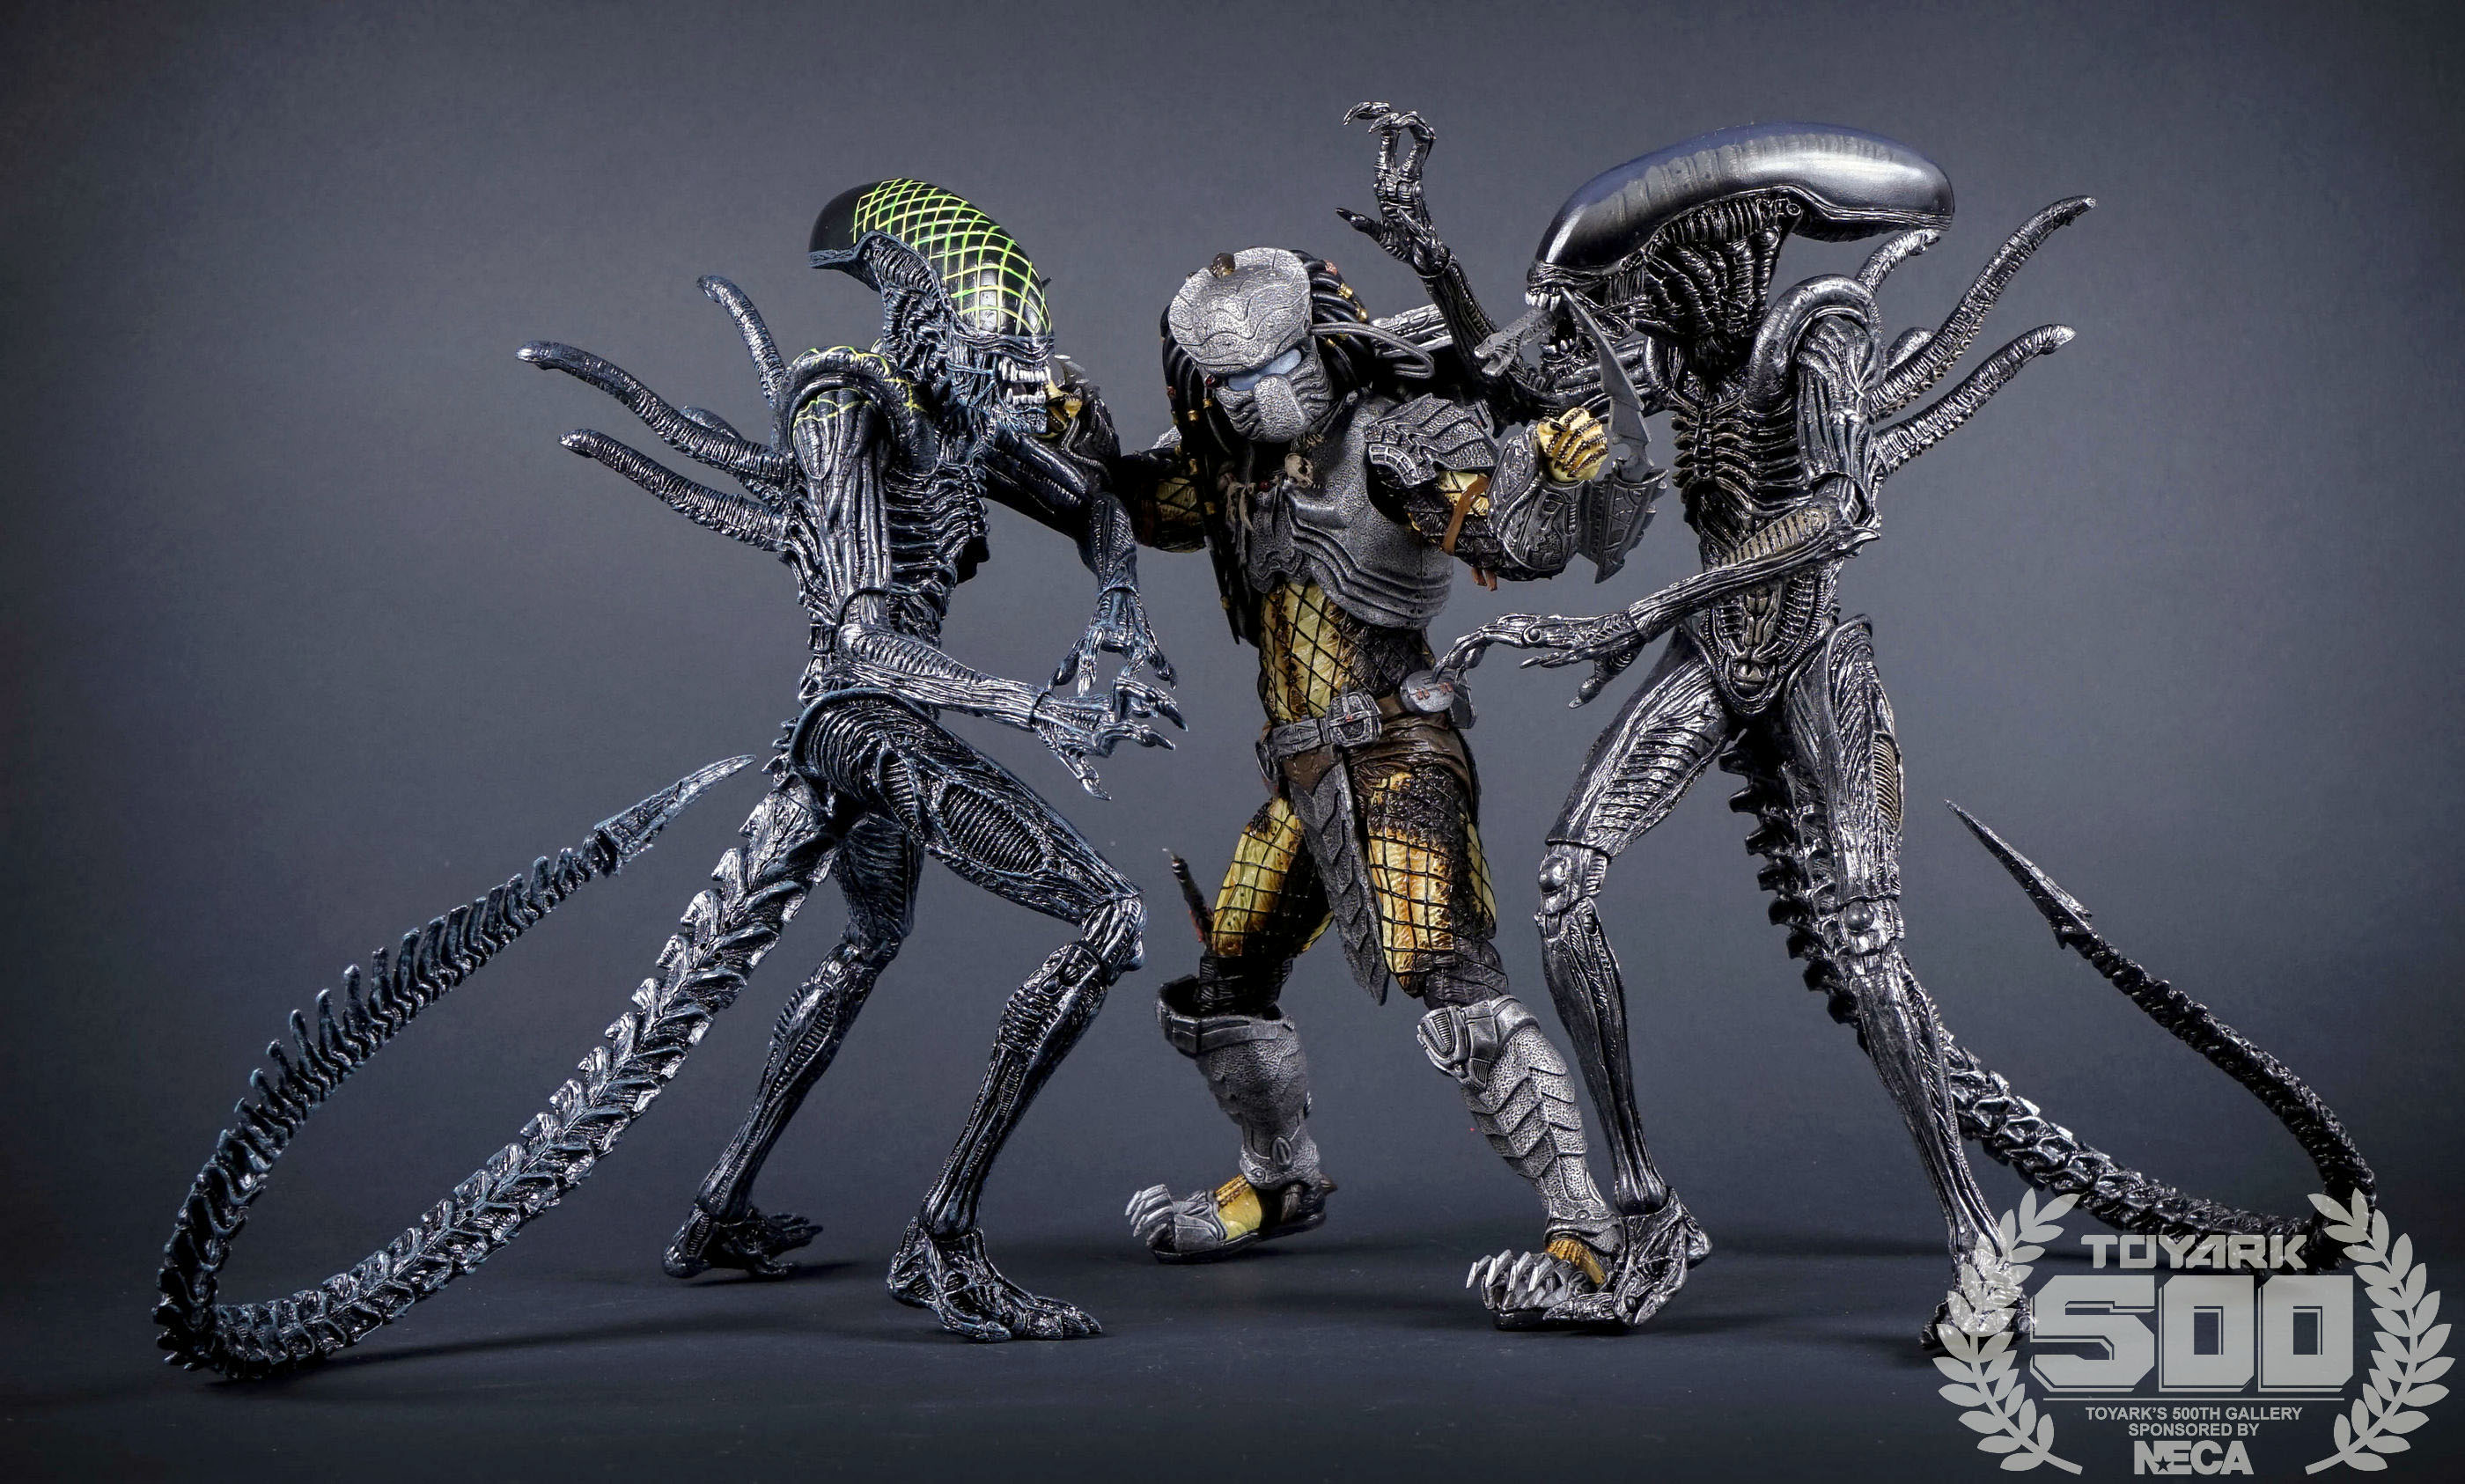 http://news.toyark.com/wp-content/uploads/sites/4/2016/01/Alien-Series-7-NECA-132.jpg